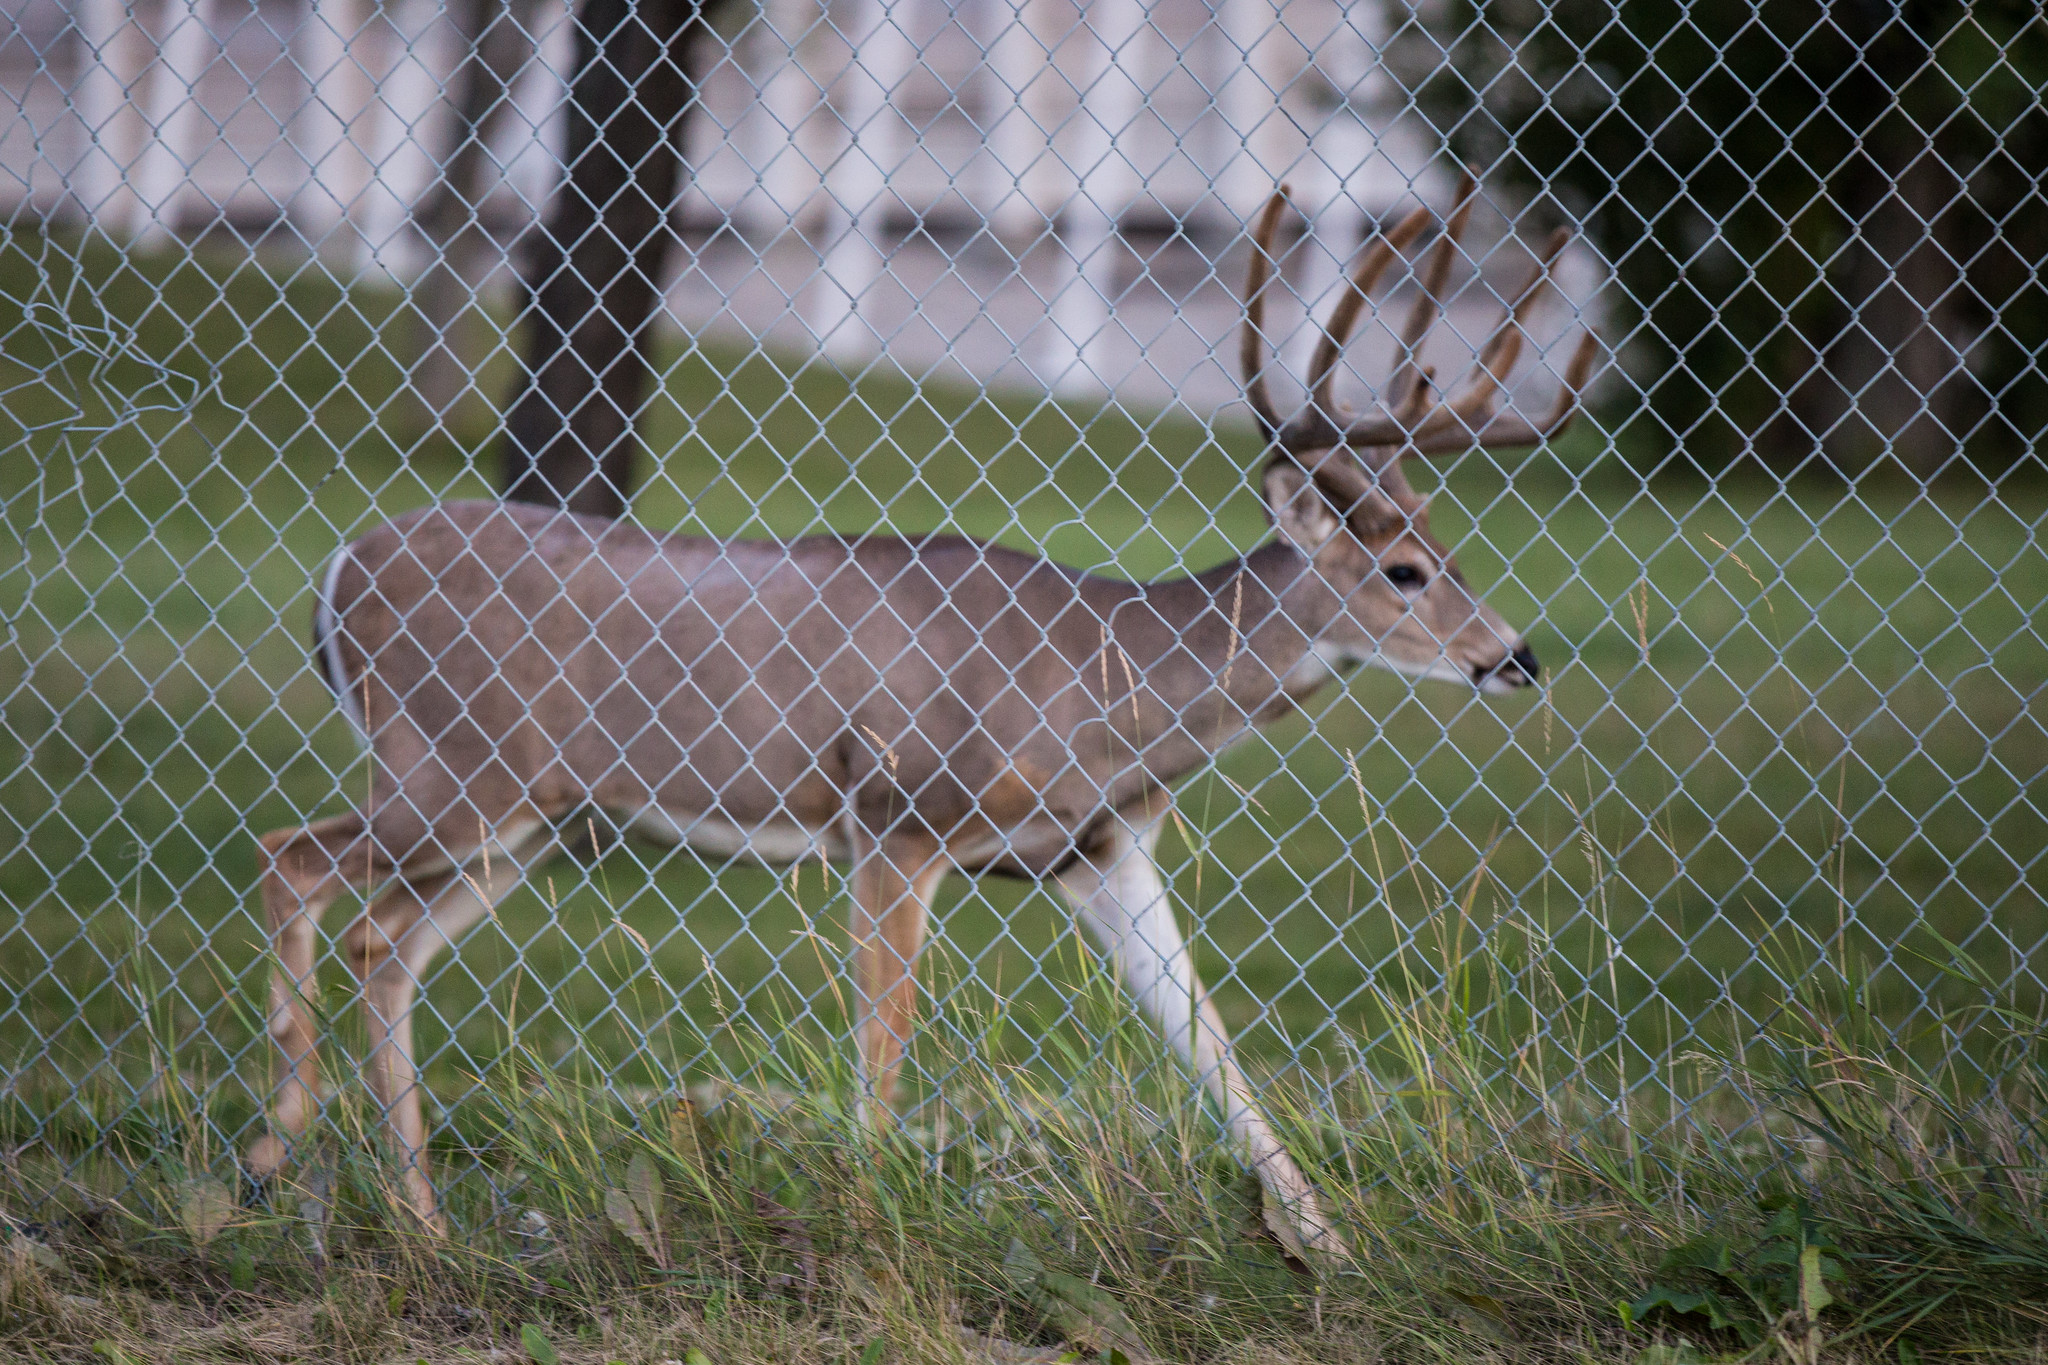 "The deer are behind a fence, but they likely leave the property from time to time, says wildlife biologist Colleen St. Clair. ""I would be very surprised if they are stuck in there and can't leave."" (Deer photos by Mack Male)"